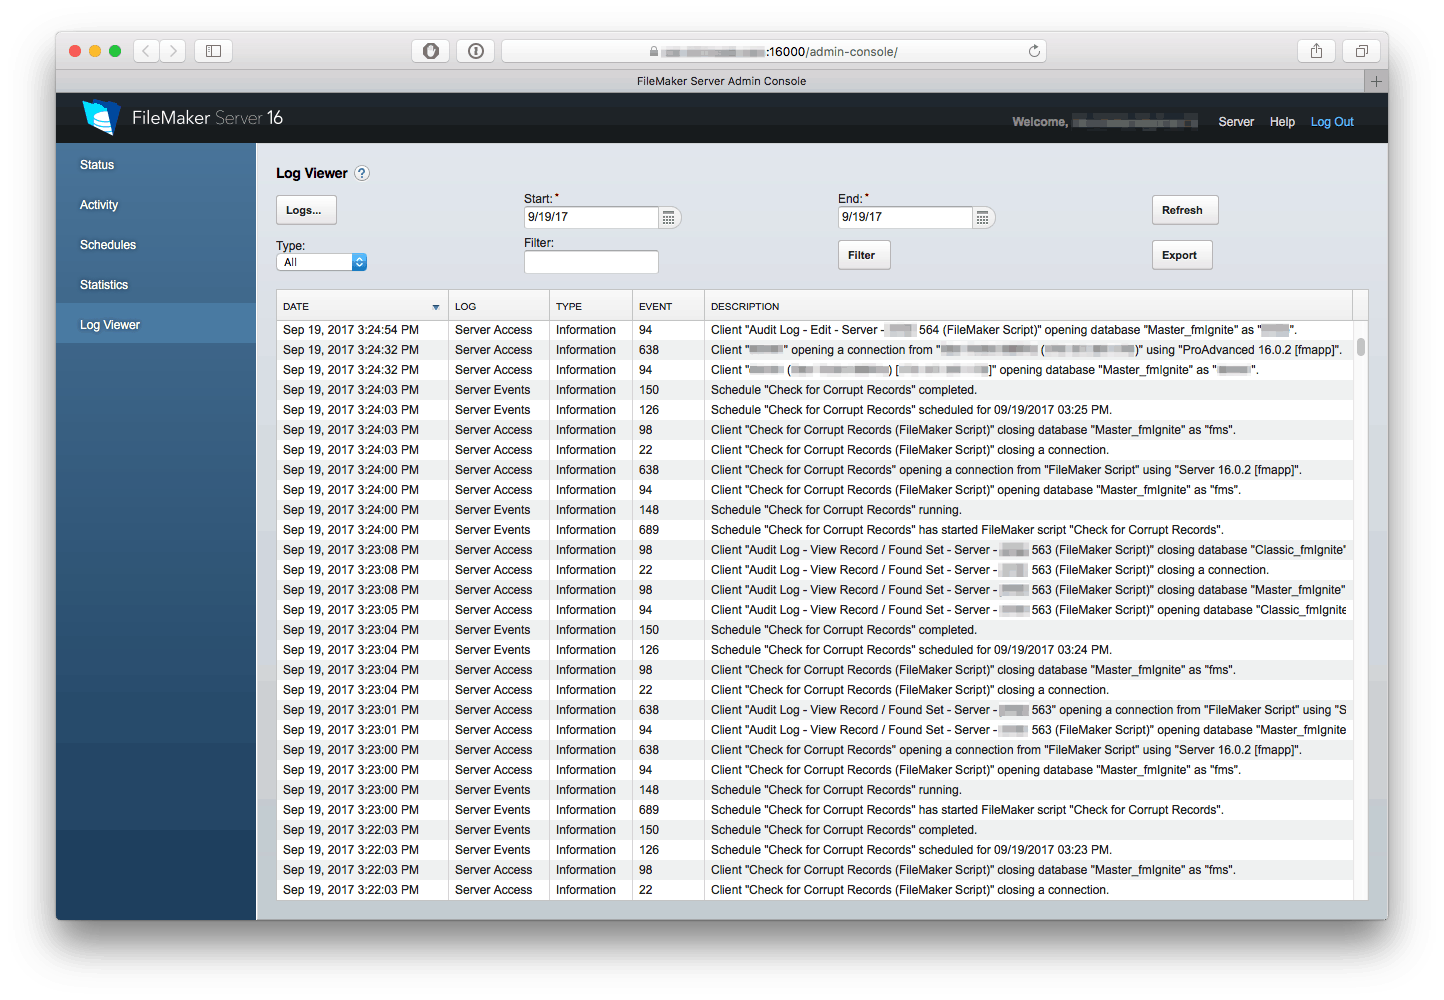 FileMaker Log Viewer - Make Log Files Less Painful